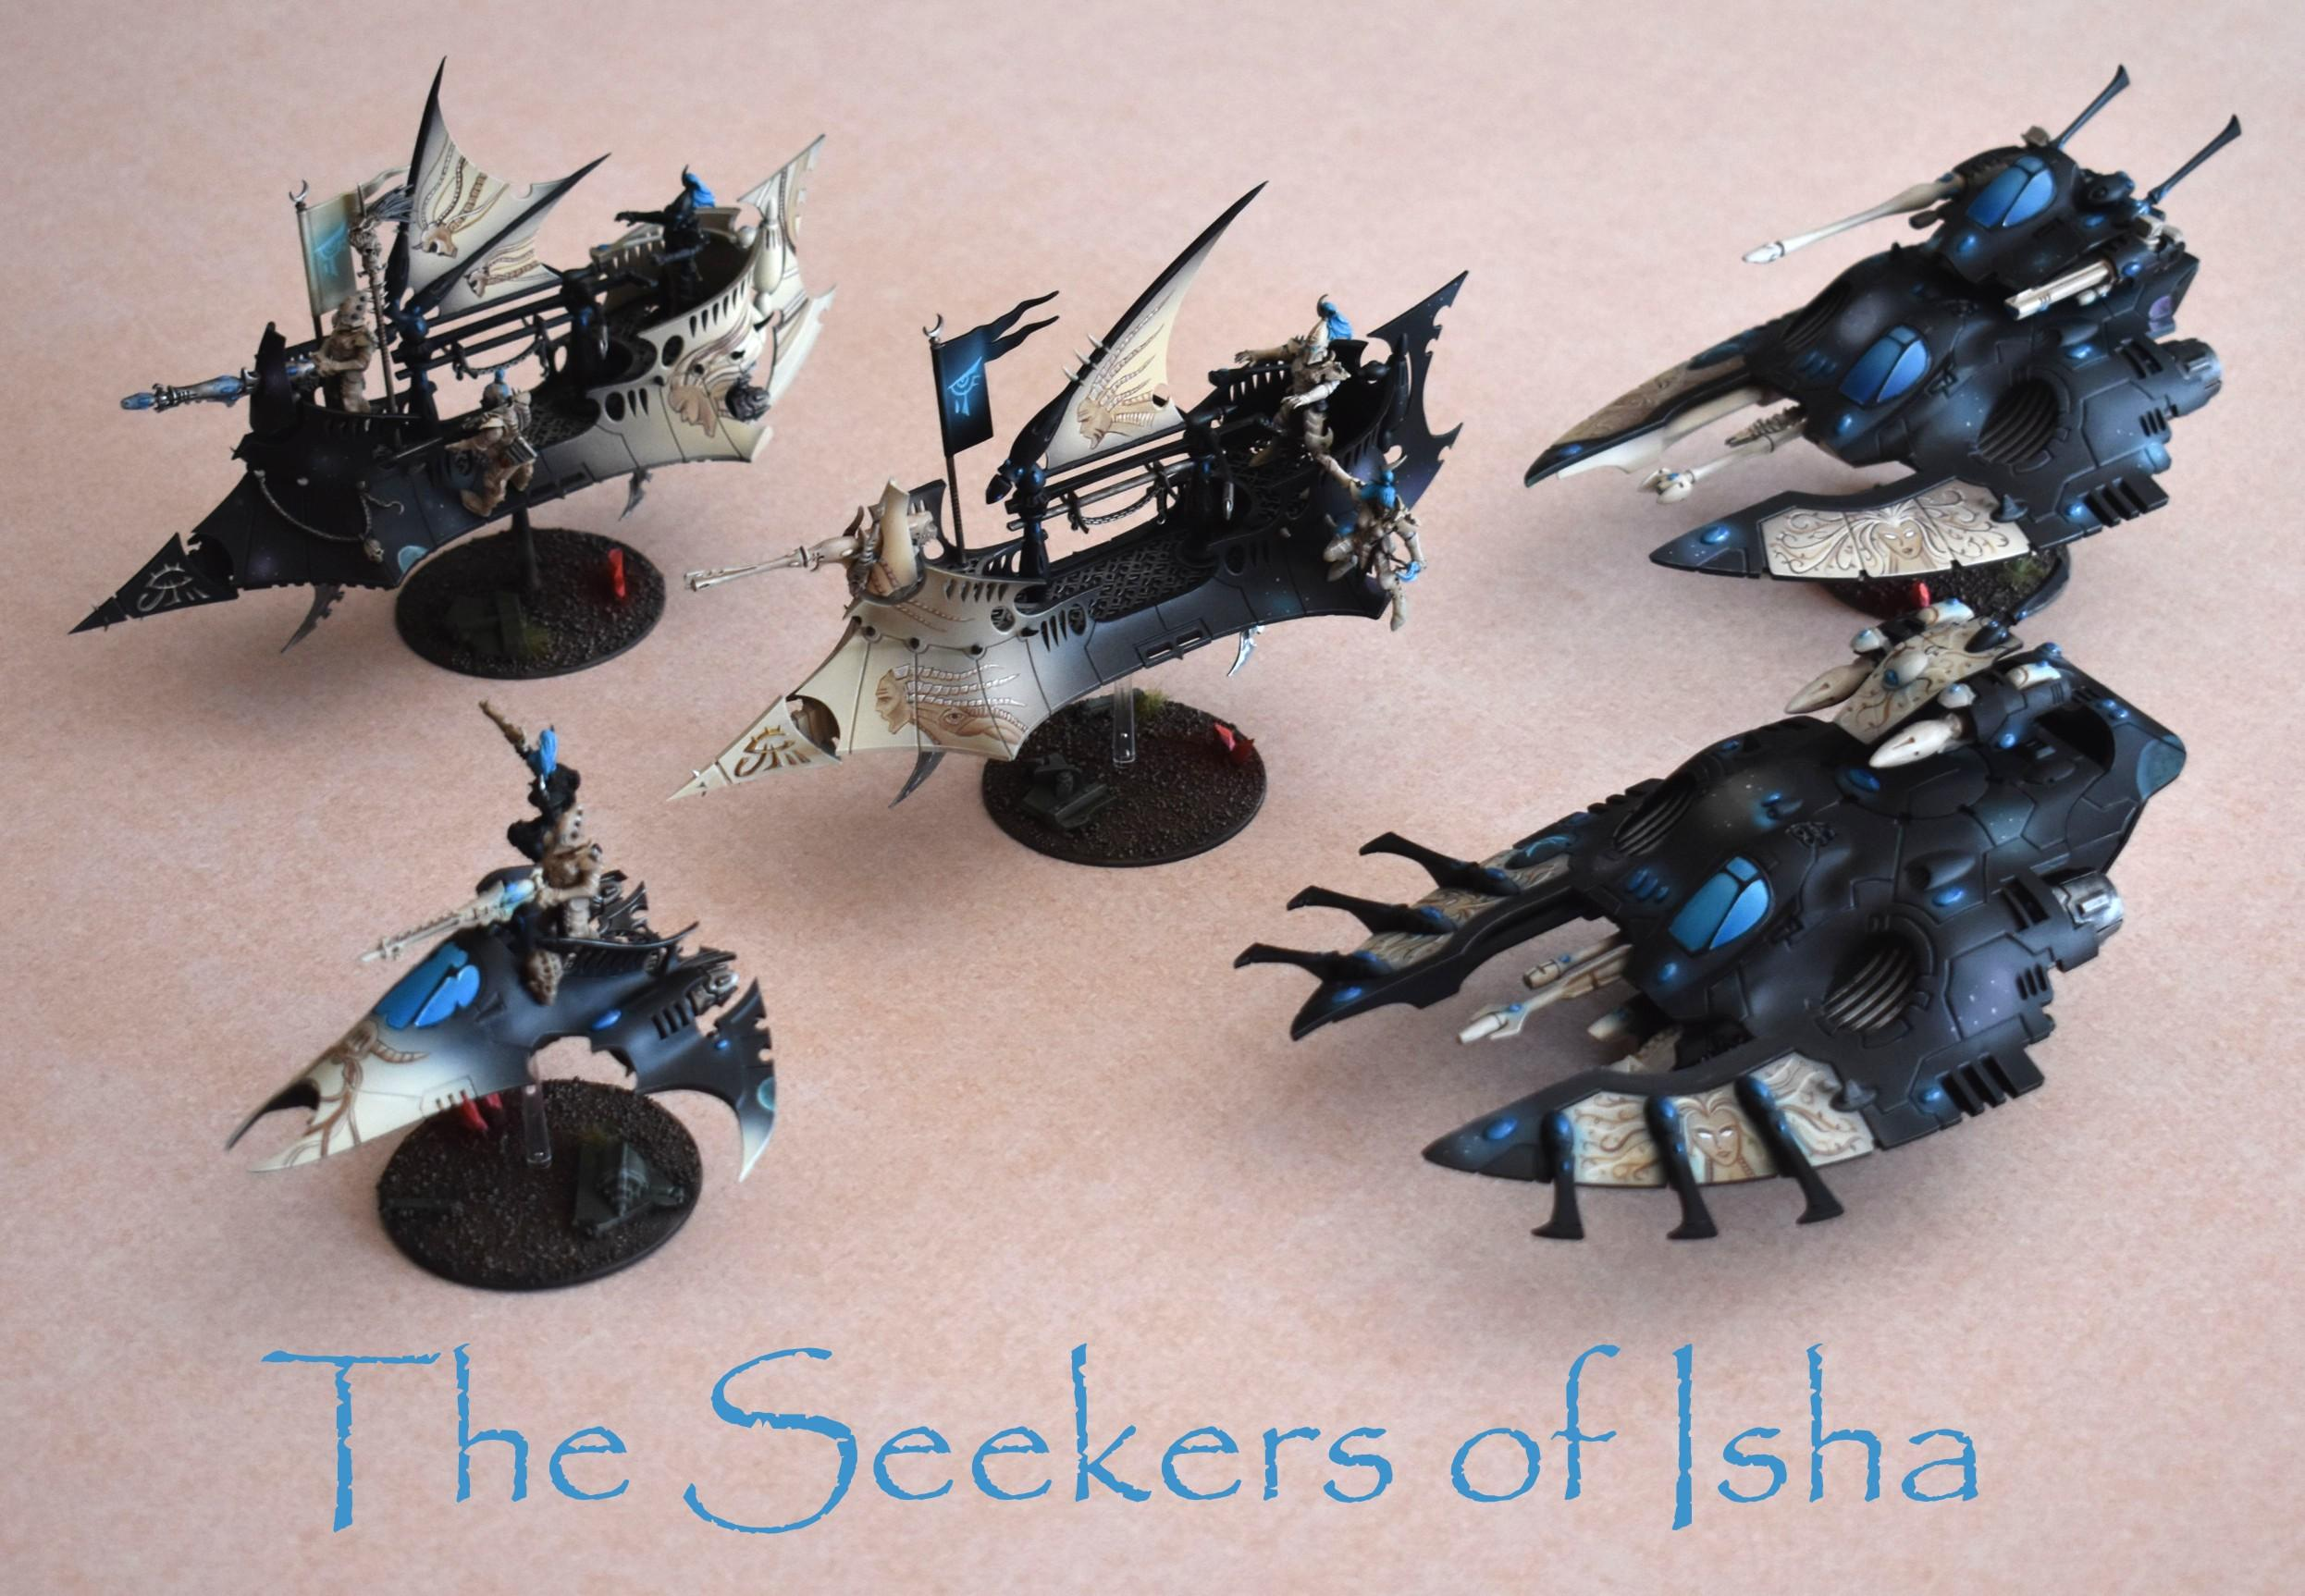 Dark Eldar, Eldar, Falcon, Fleet, Freehand, Isha, Object Source Lighting, Raider, Serpent, Ulthwe, Venom, Ynnari